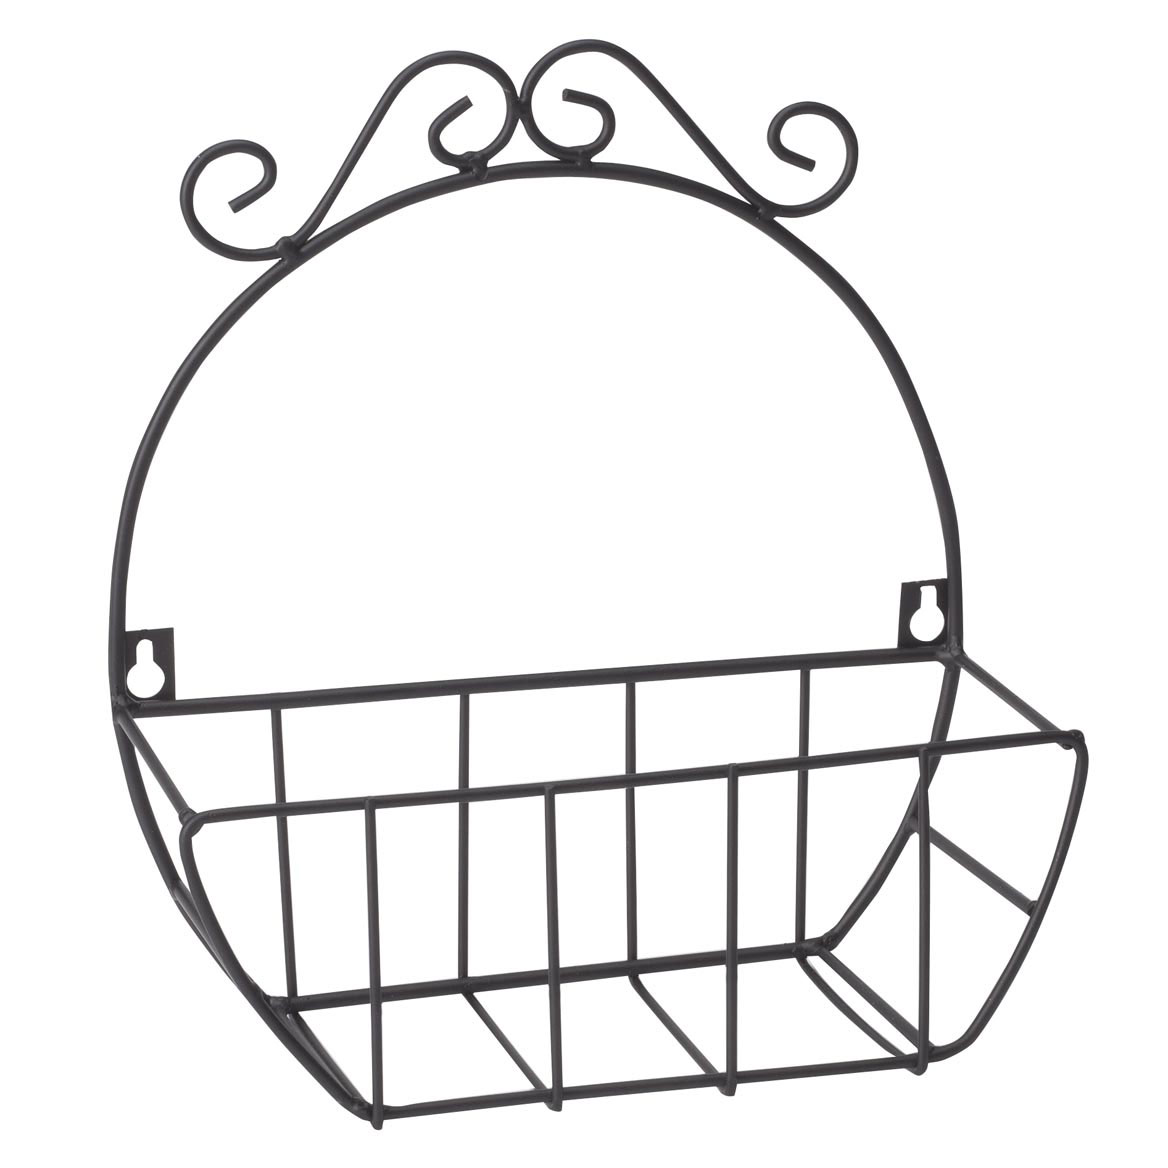 wire paper plate holder walmart Electrical Wire Connector Clip Art